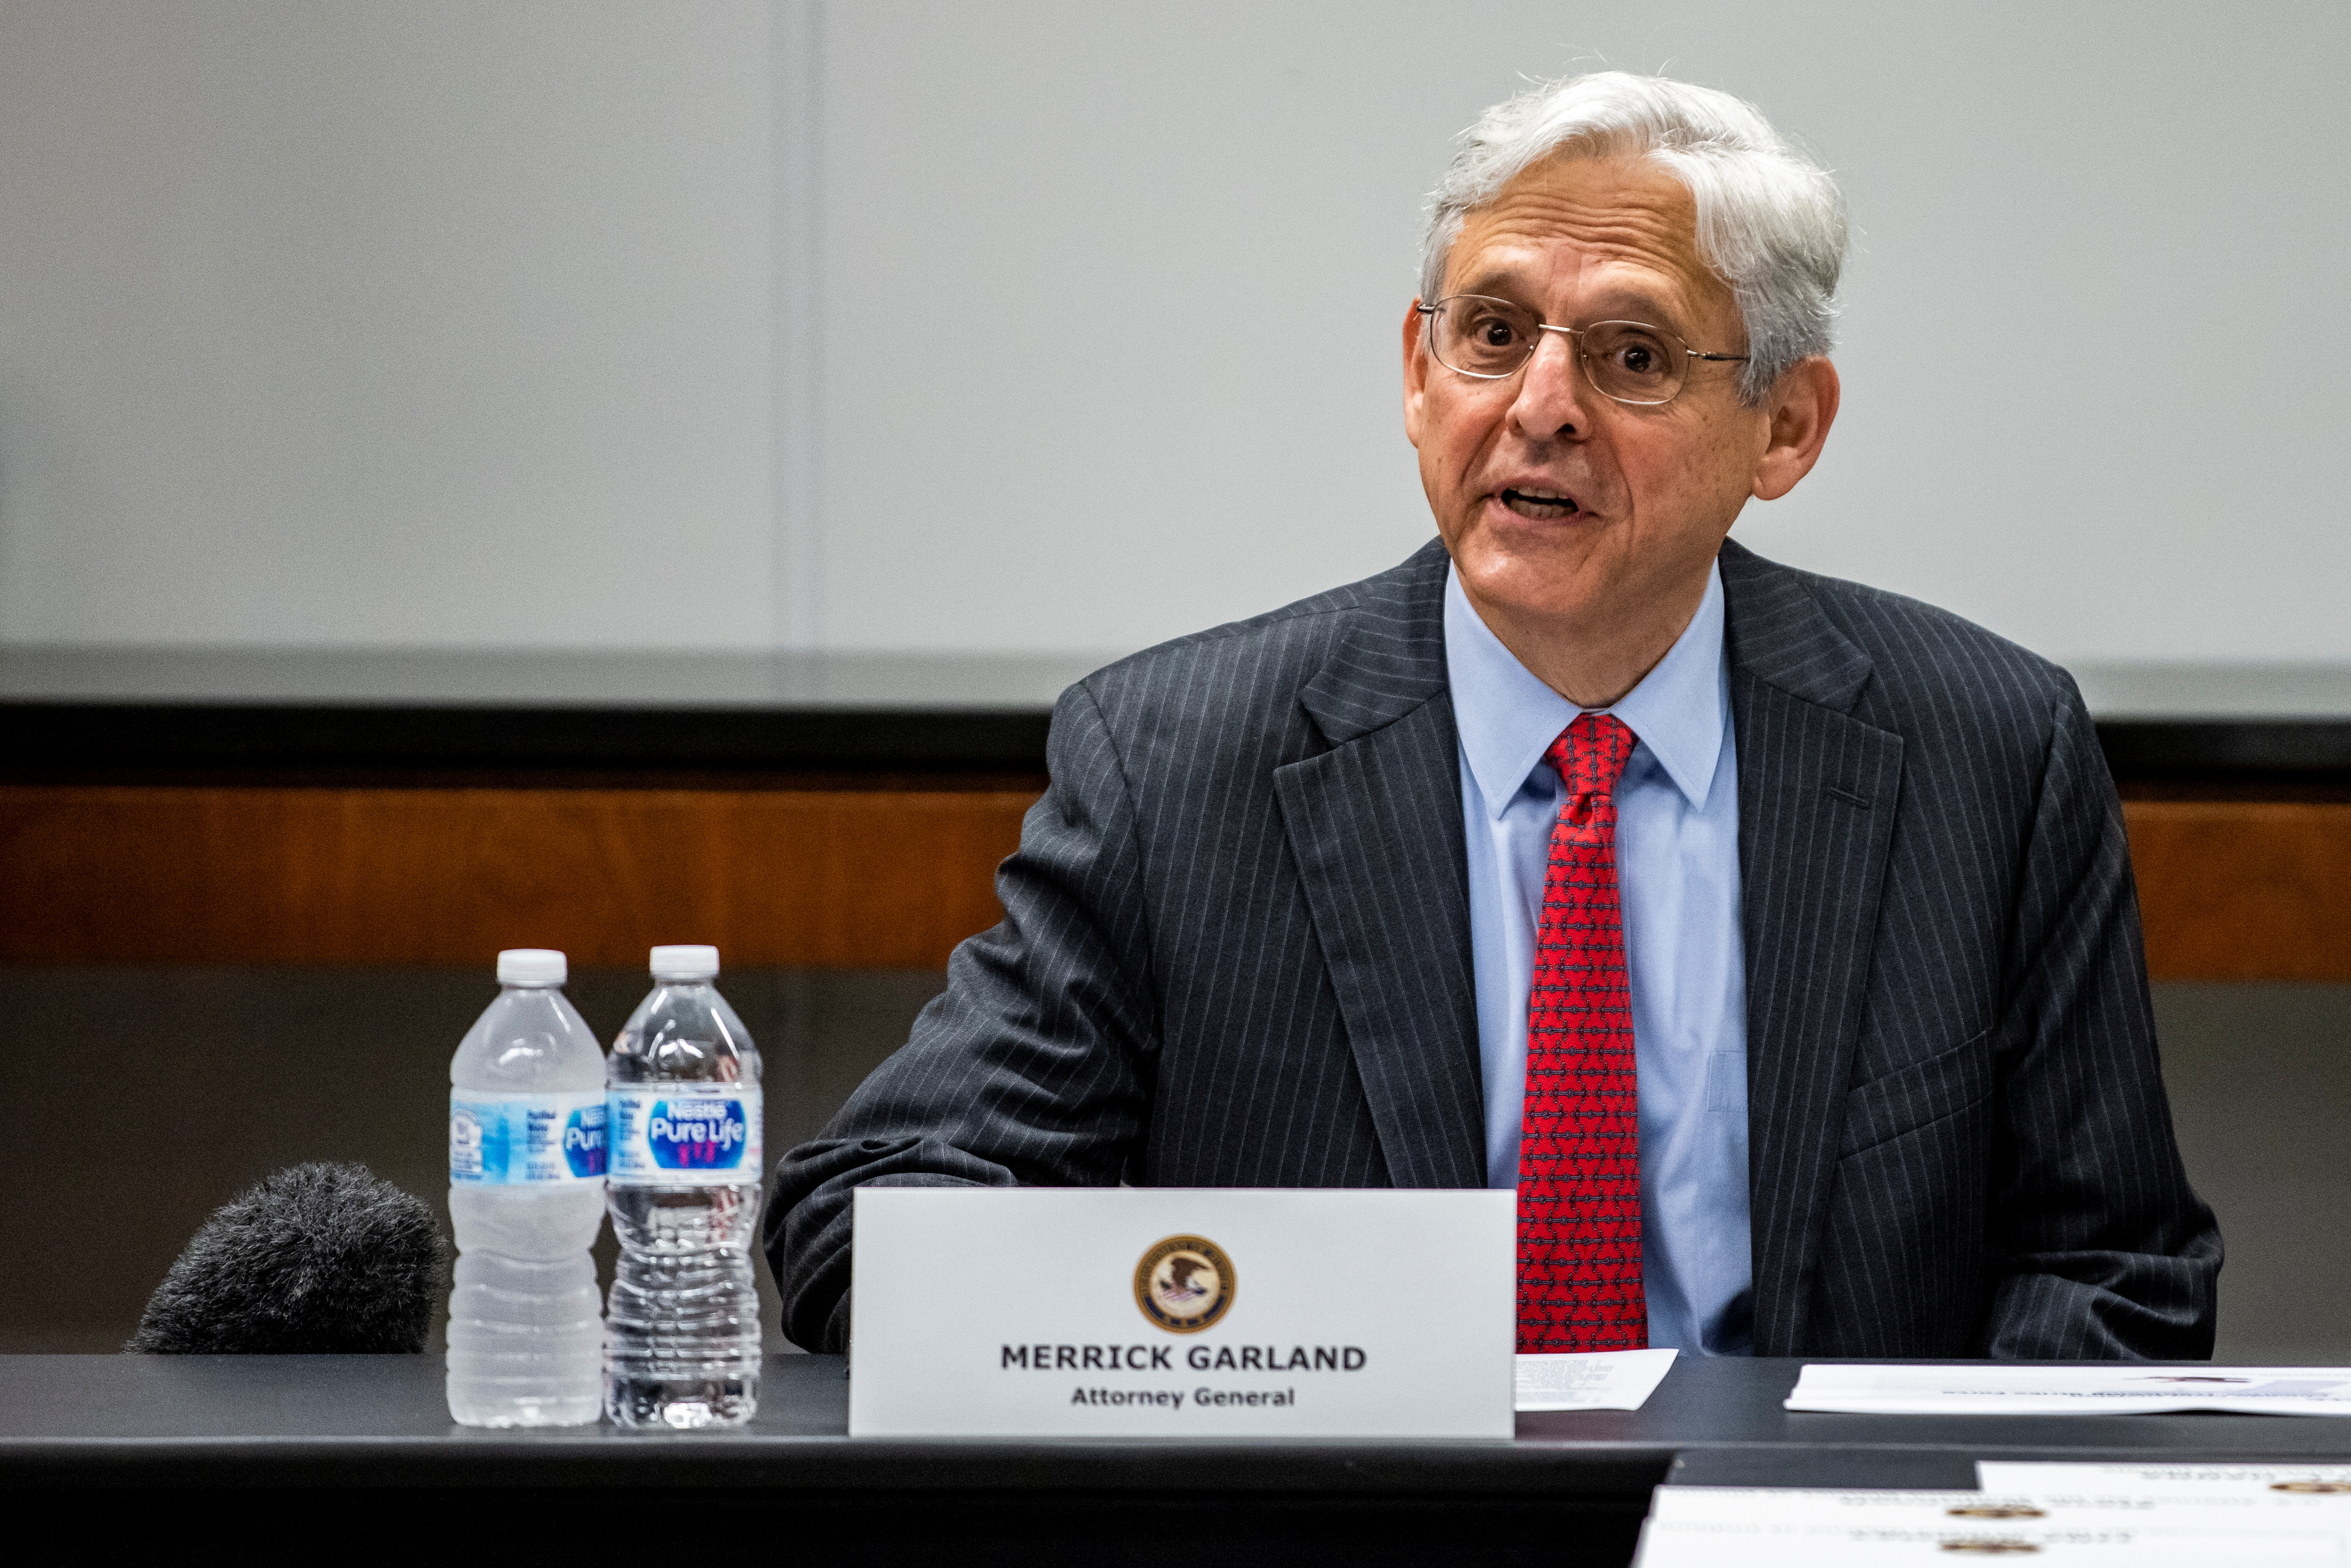 U.S. Attorney General Merrick Garland attends a meeting with various law enforcement leadership and Illinois-area Strike Force Teams at the U.S. Attorney's Office as an initiative was announced today to reduce gun violence with five cross-jurisdictional strike forces by disrupting illegal firearms trafficking in key U.S. regions, in Chicago, Illinois, U.S., July 23, 2021. Samuel Corum/Pool via REUTERS